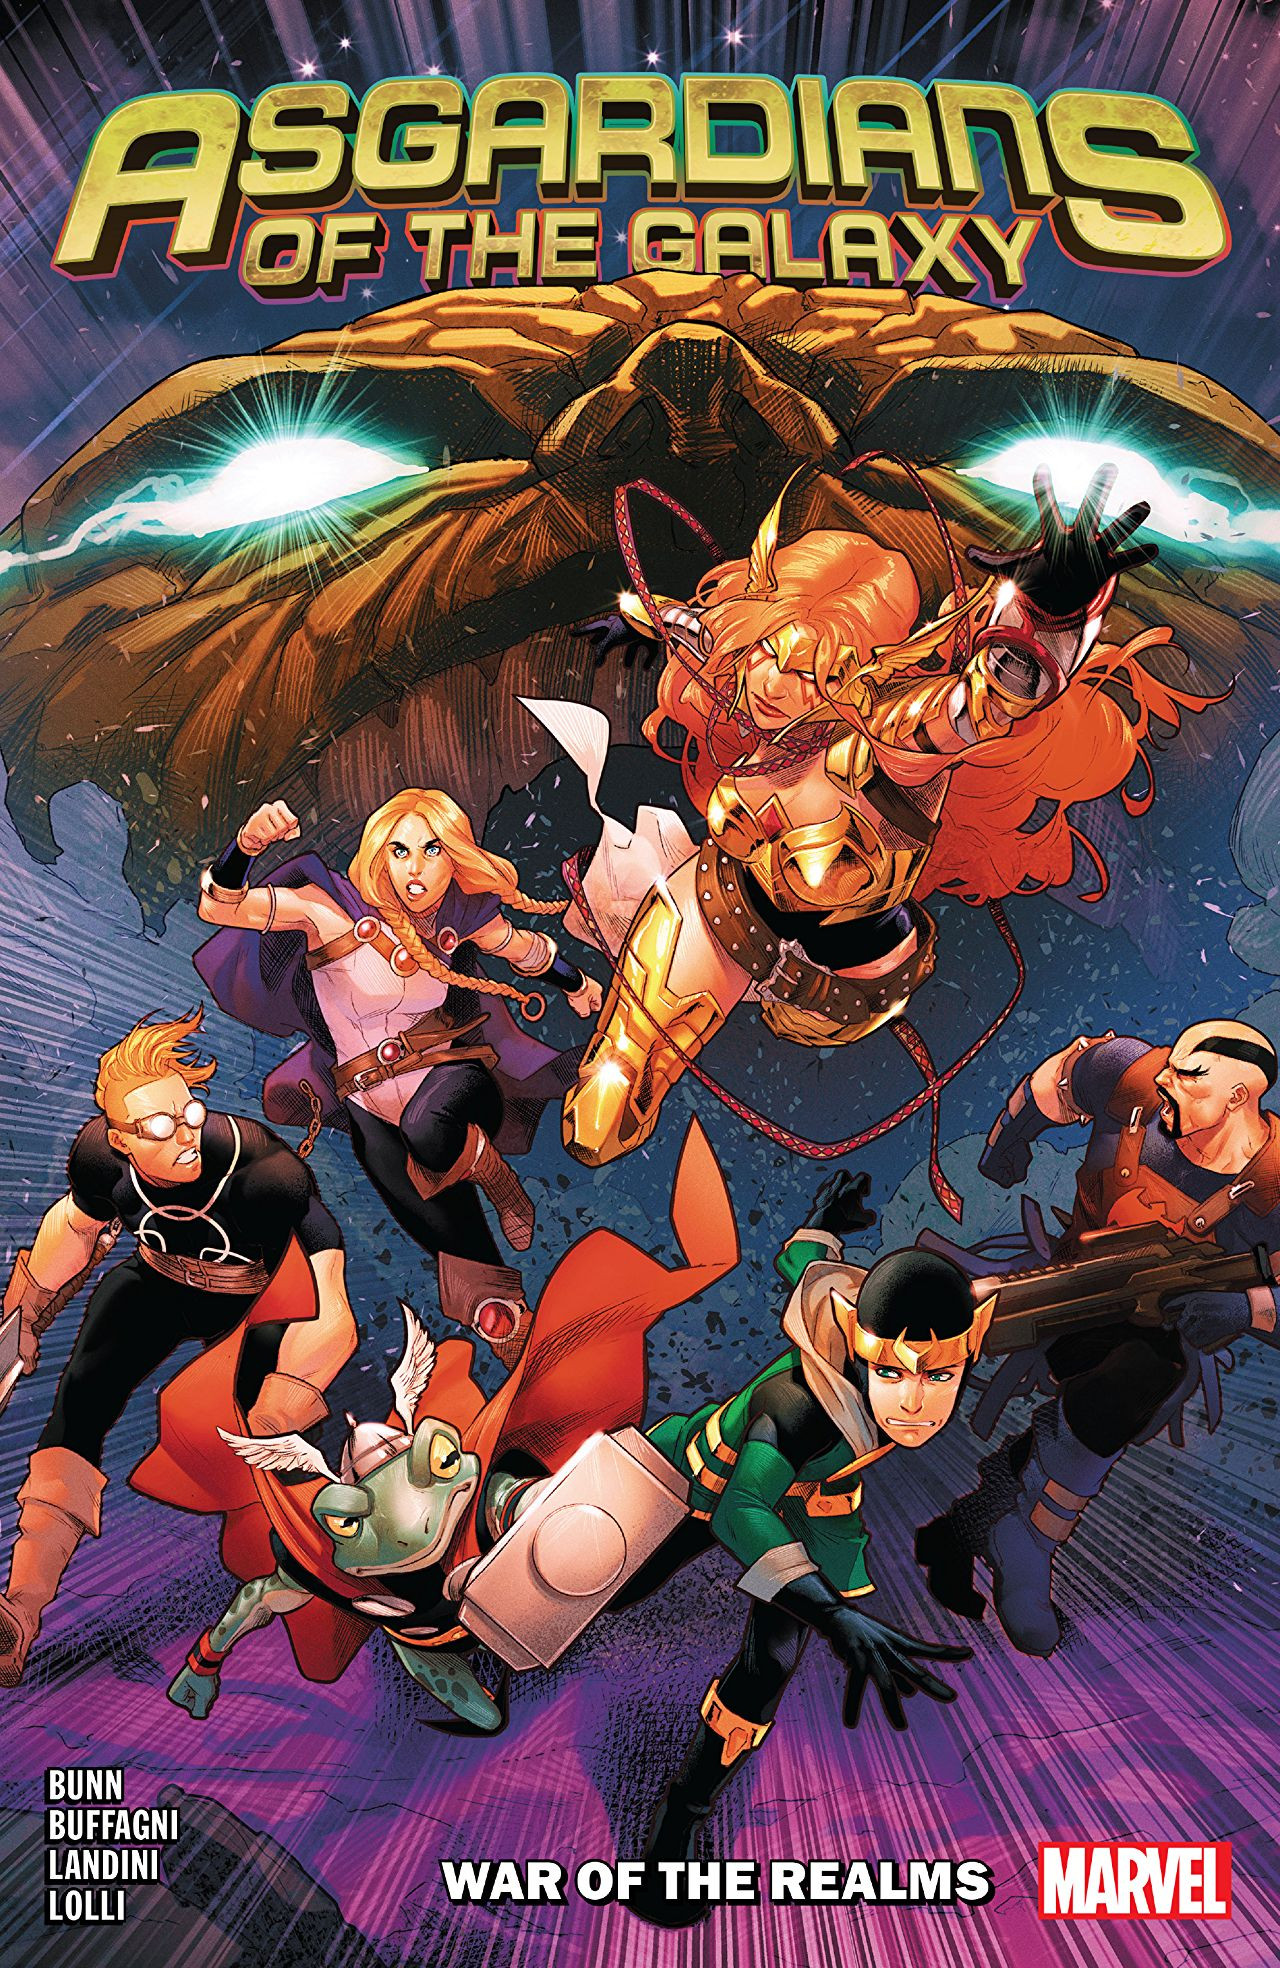 Asgardians of the Galaxy TPB Vol 1 2: War Of The Realms